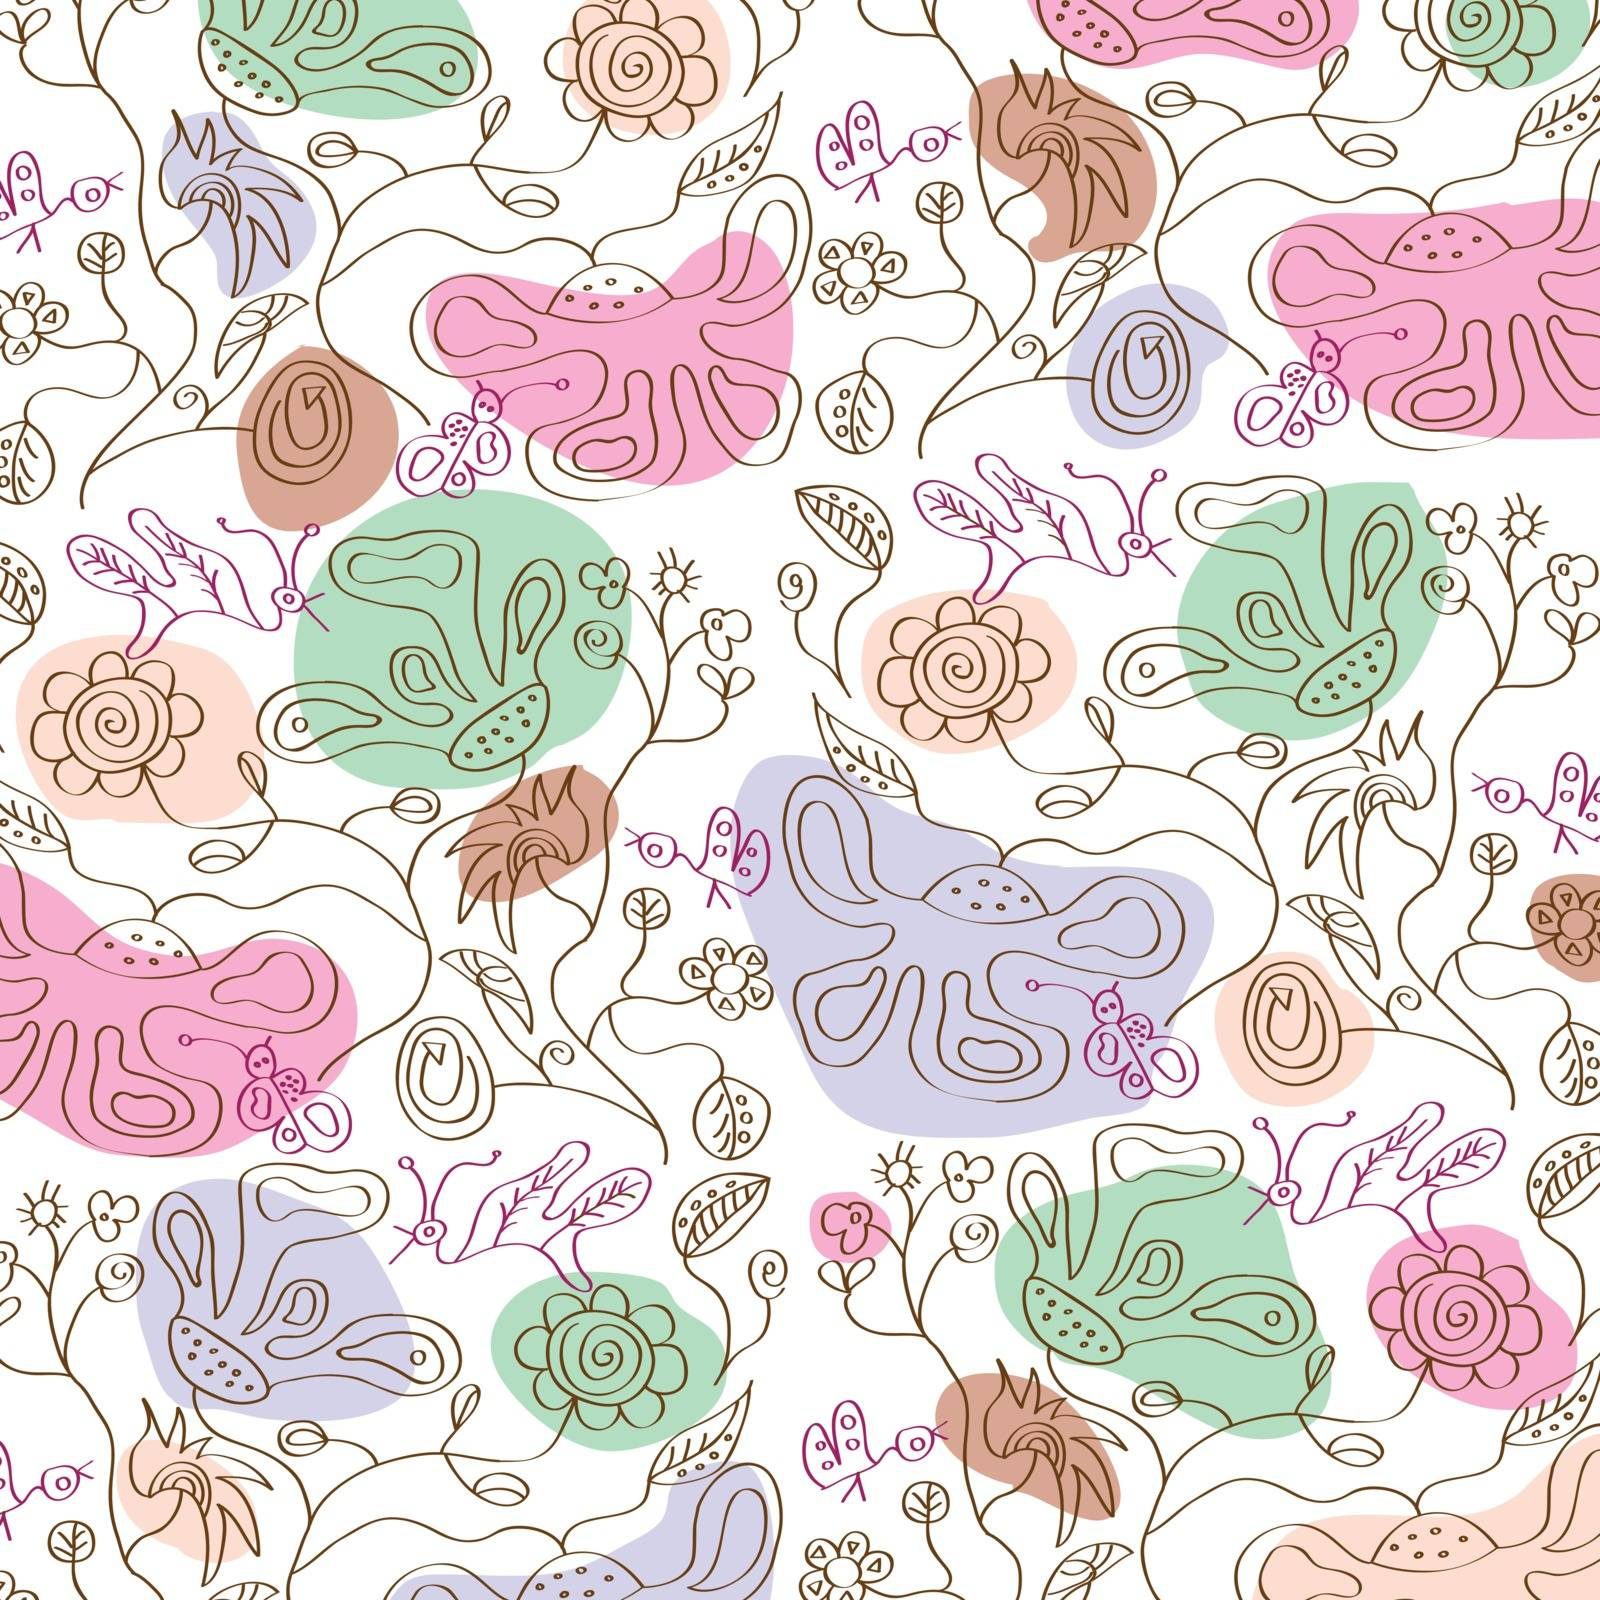 seamless floral background, illustration in vector format